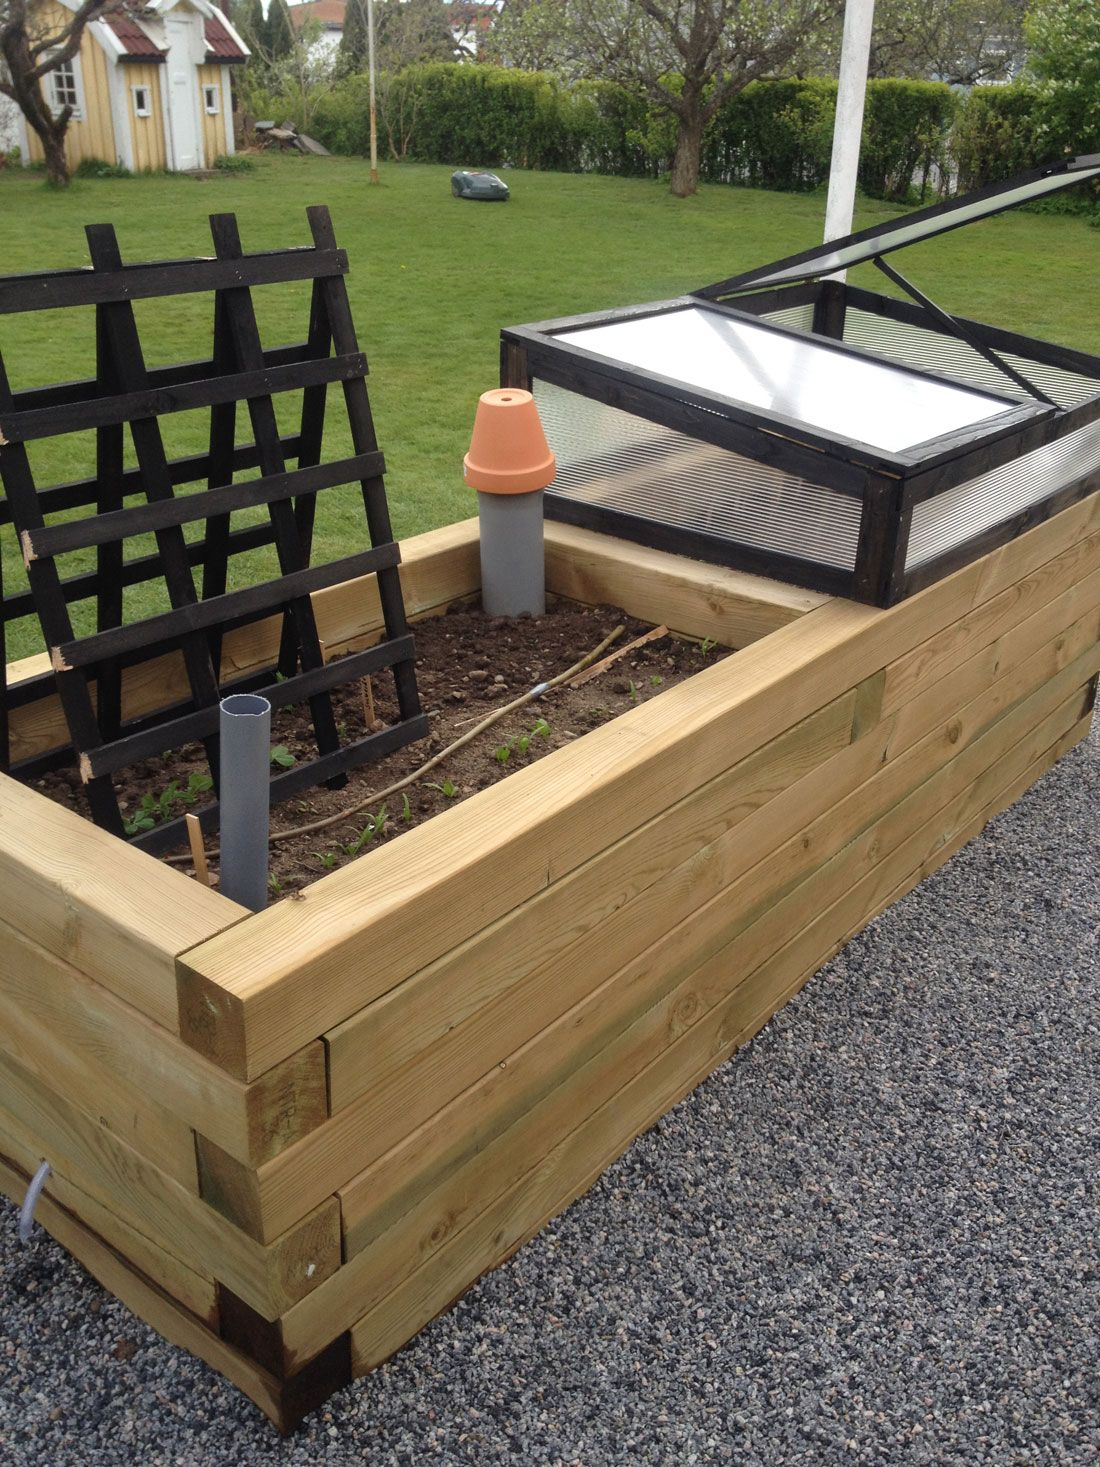 How to build a Wicking Bed • Vegocracy in 2020 Wicking